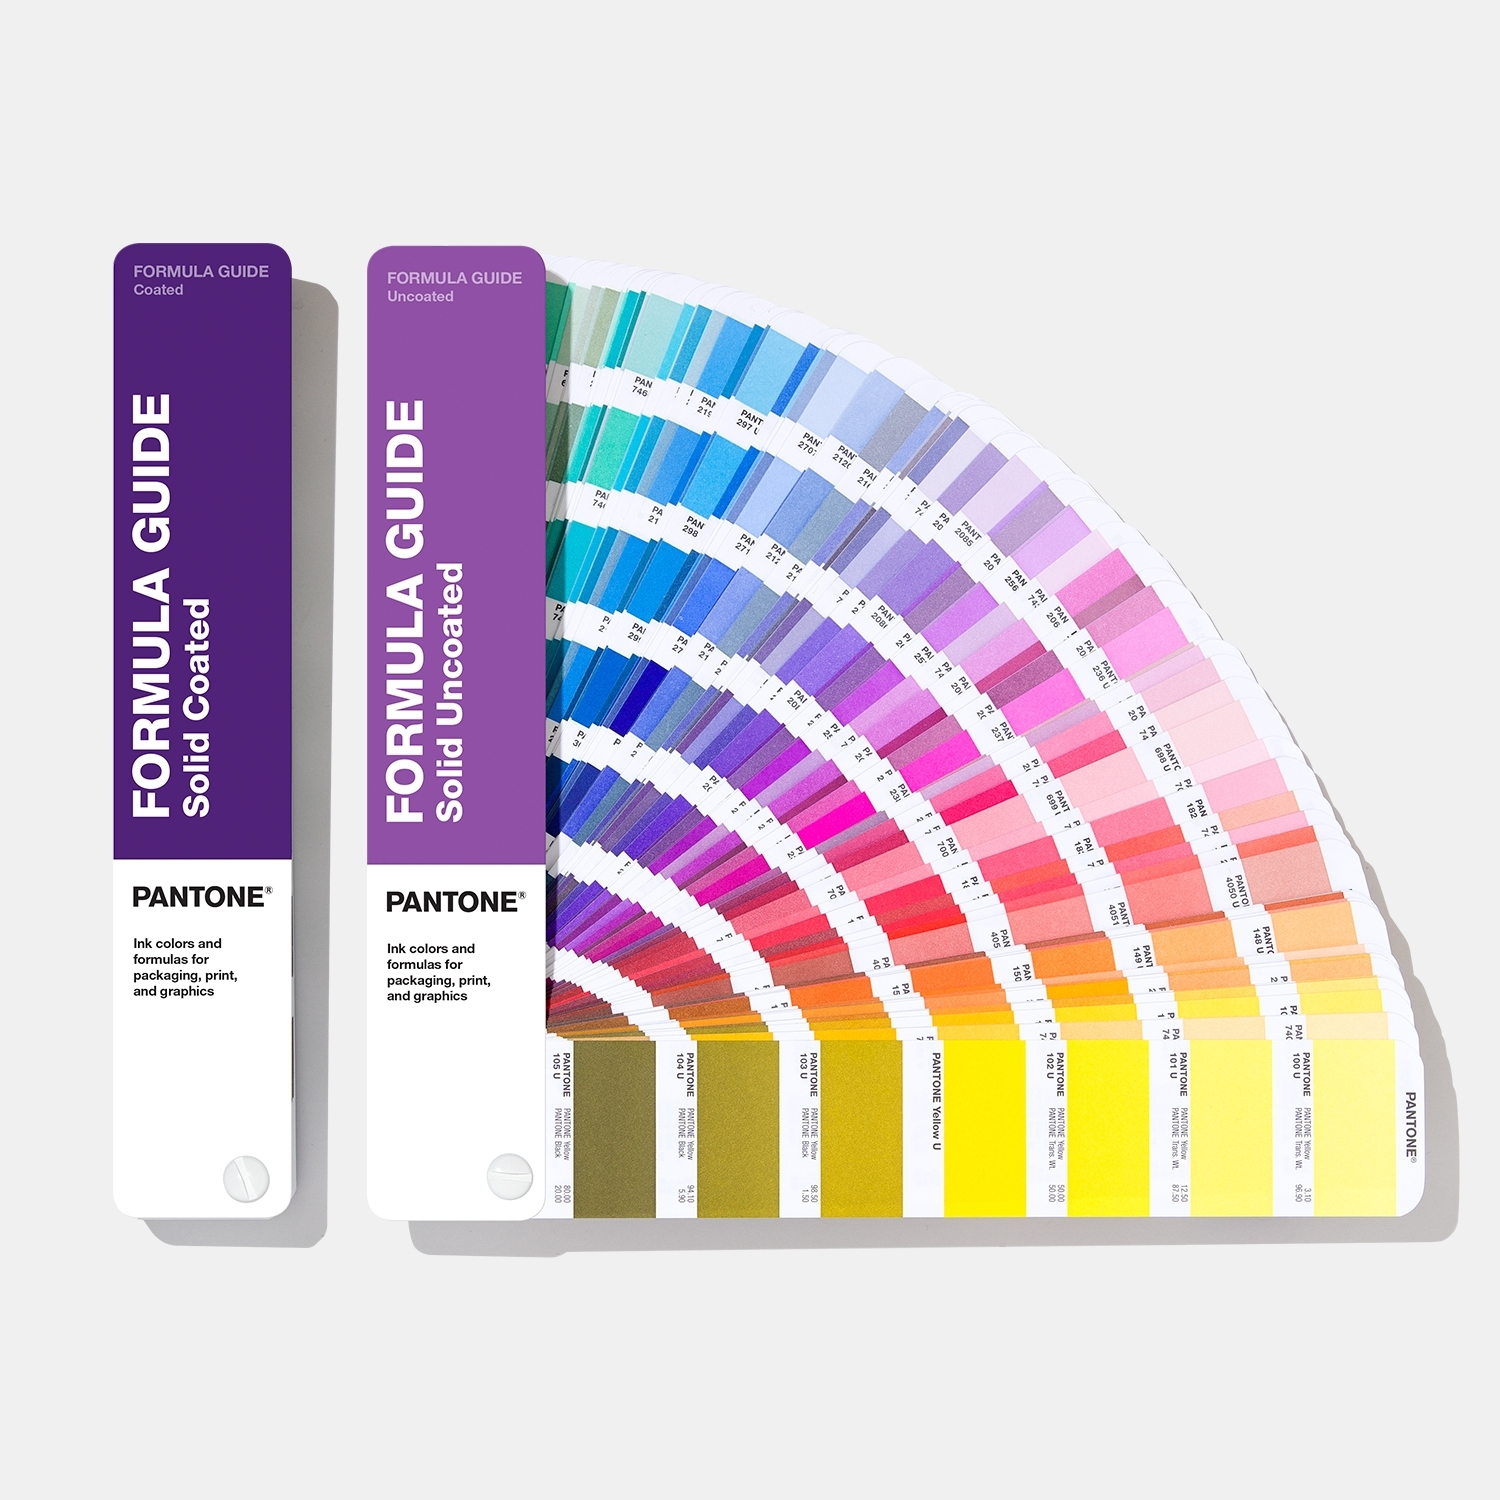 Pantone Formula Guide Limited Edition Color Of The Year 2018 Ultra Violet View